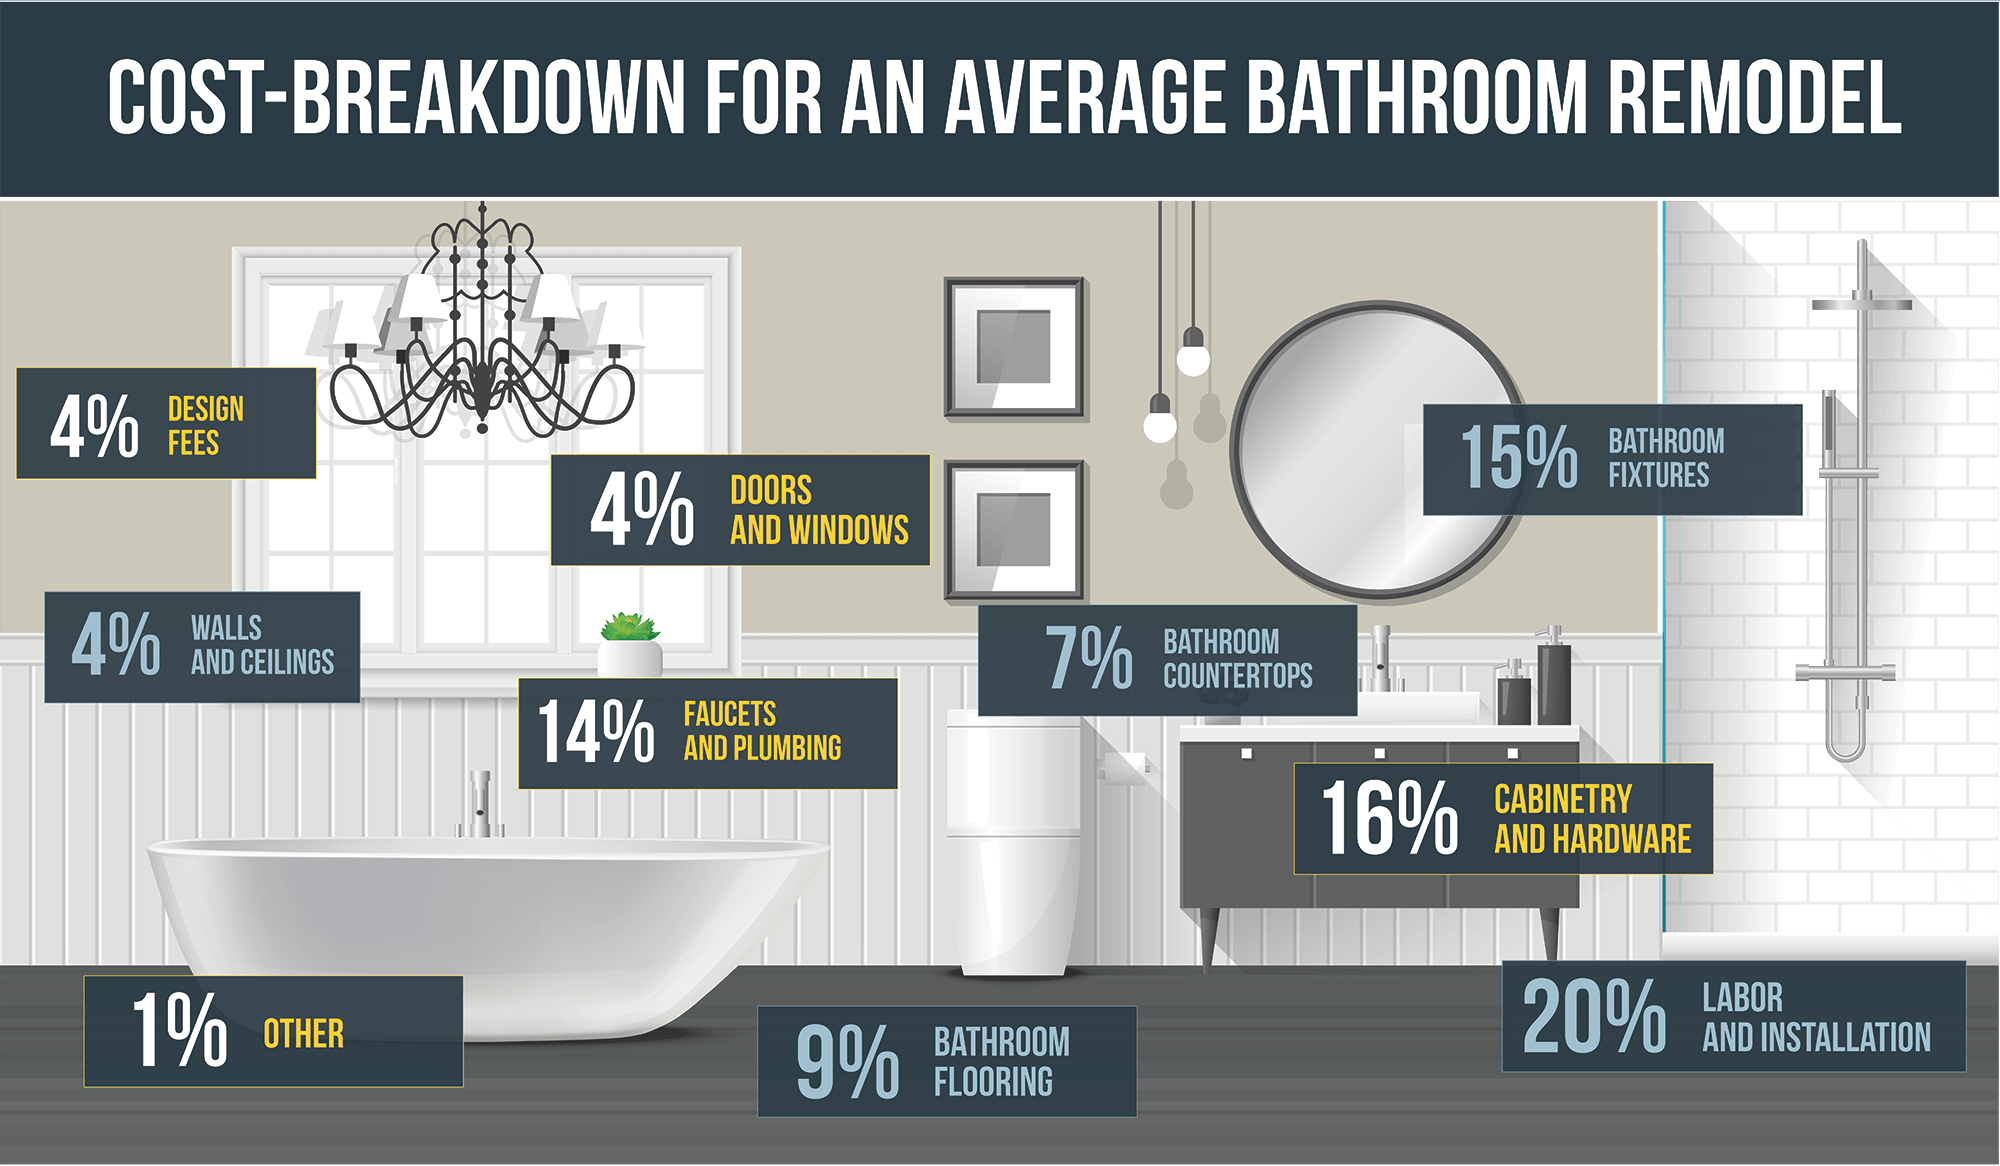 The Roi Of A Bathroom Remodel